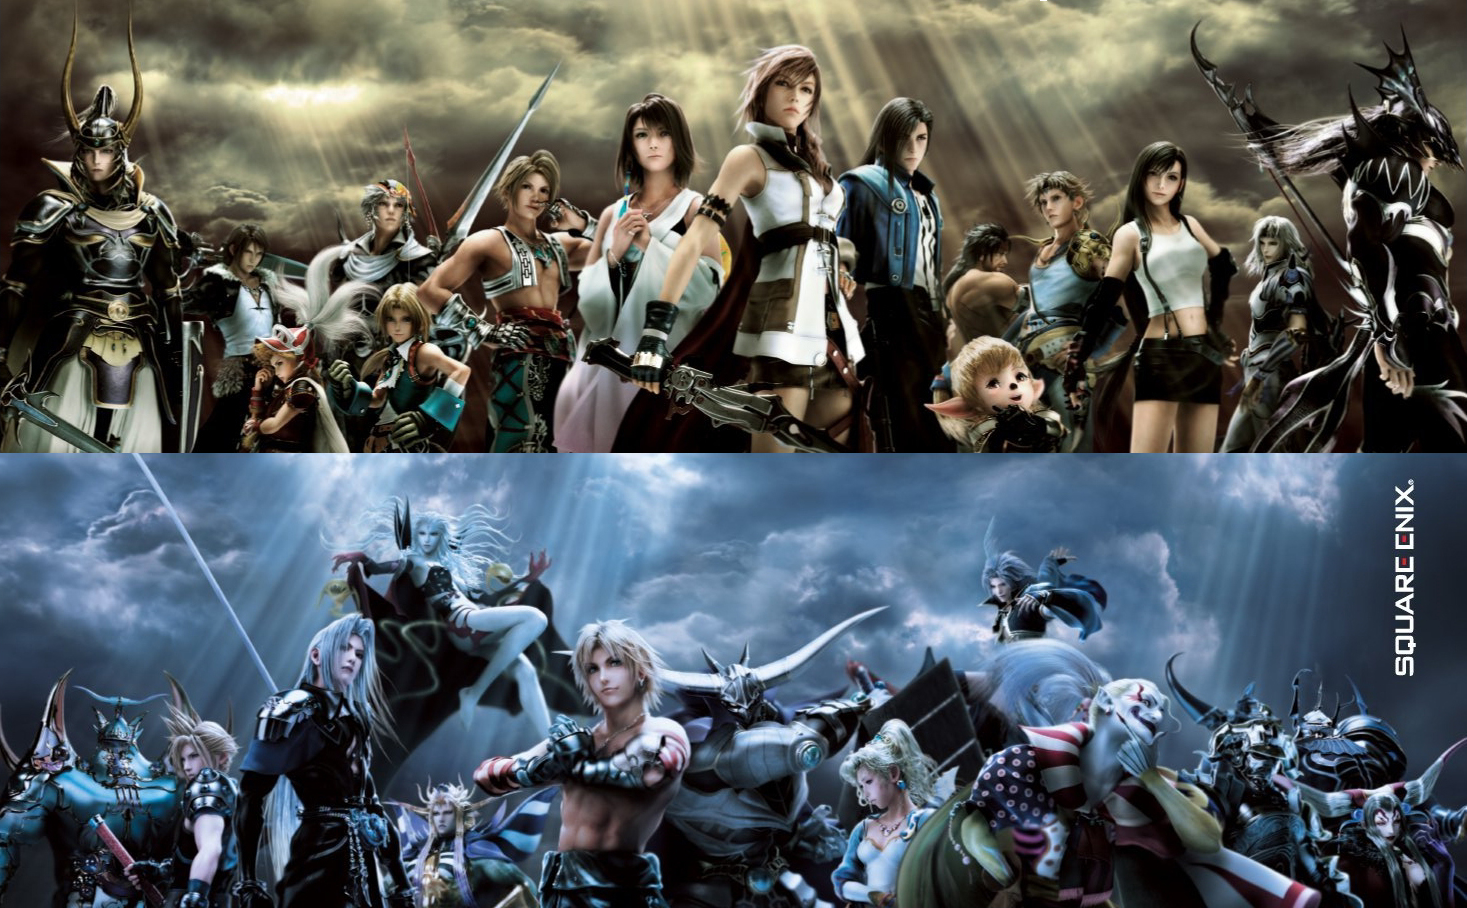 https://vignette.wikia.nocookie.net/finalfantasy/images/8/81/Dissidia_012_Main_Cast.png/revision/latest?cb=20110214032014